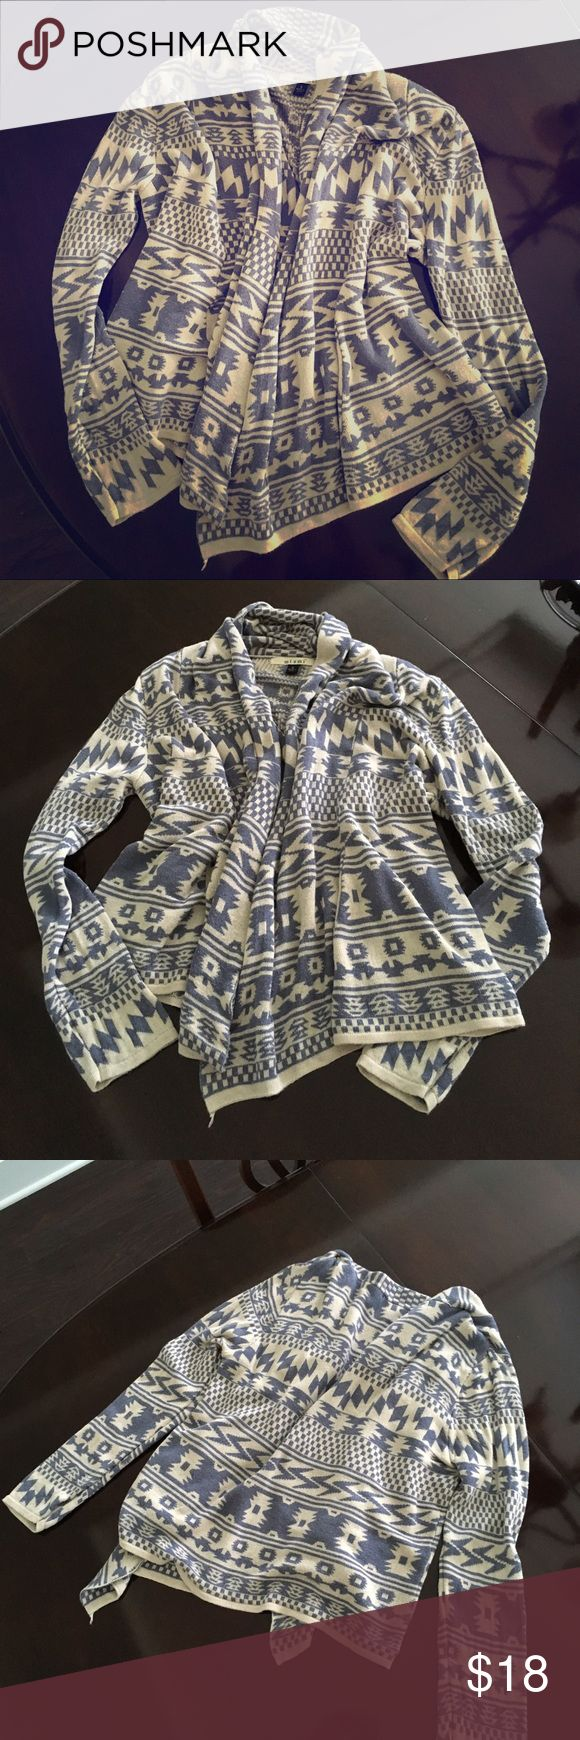 Aztec print cardigan Beautiful ivory sweater w/ powder blue aztec-inspired print. Great for fall weather. miami Sweaters